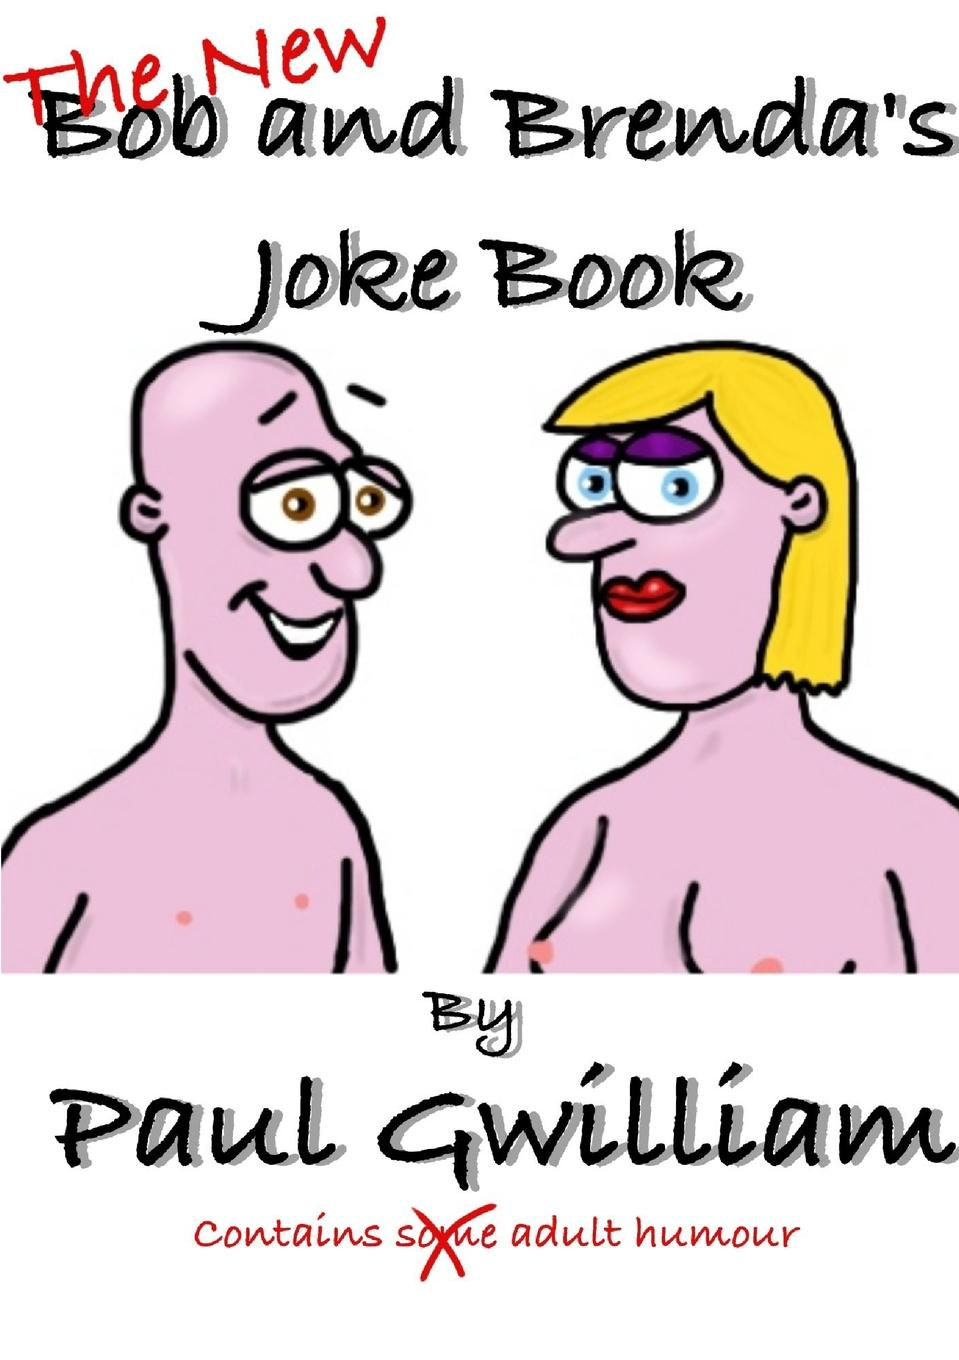 Paul Gwilliam Bob and Brenda.s New Joke Book killing joke killing joke brighter than a thousand suns picture